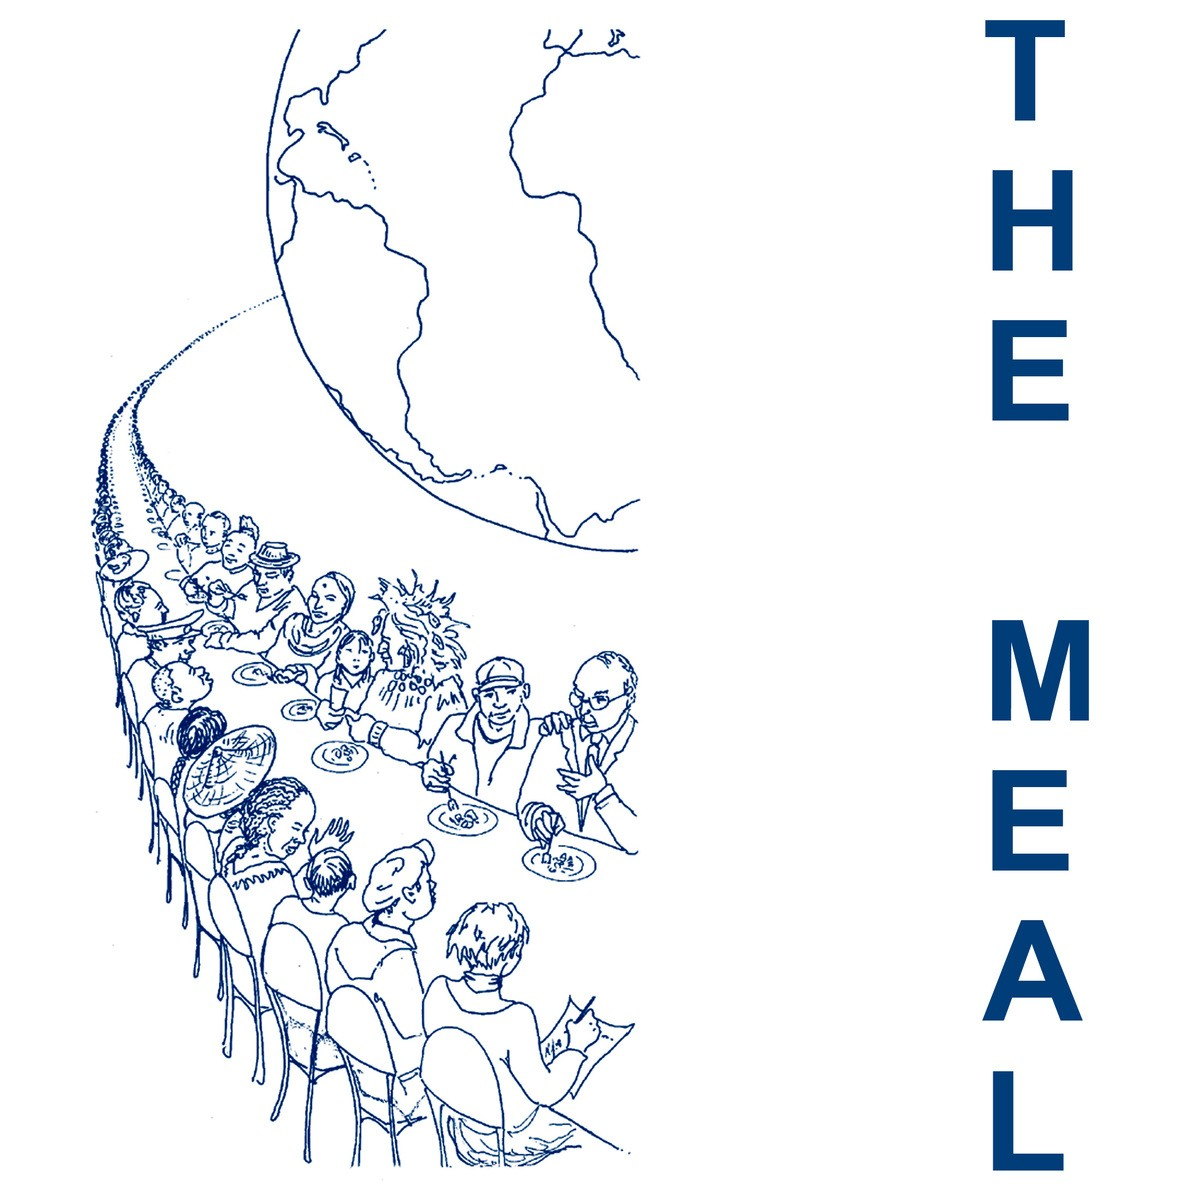 THE MEAL INTERNATIONAL